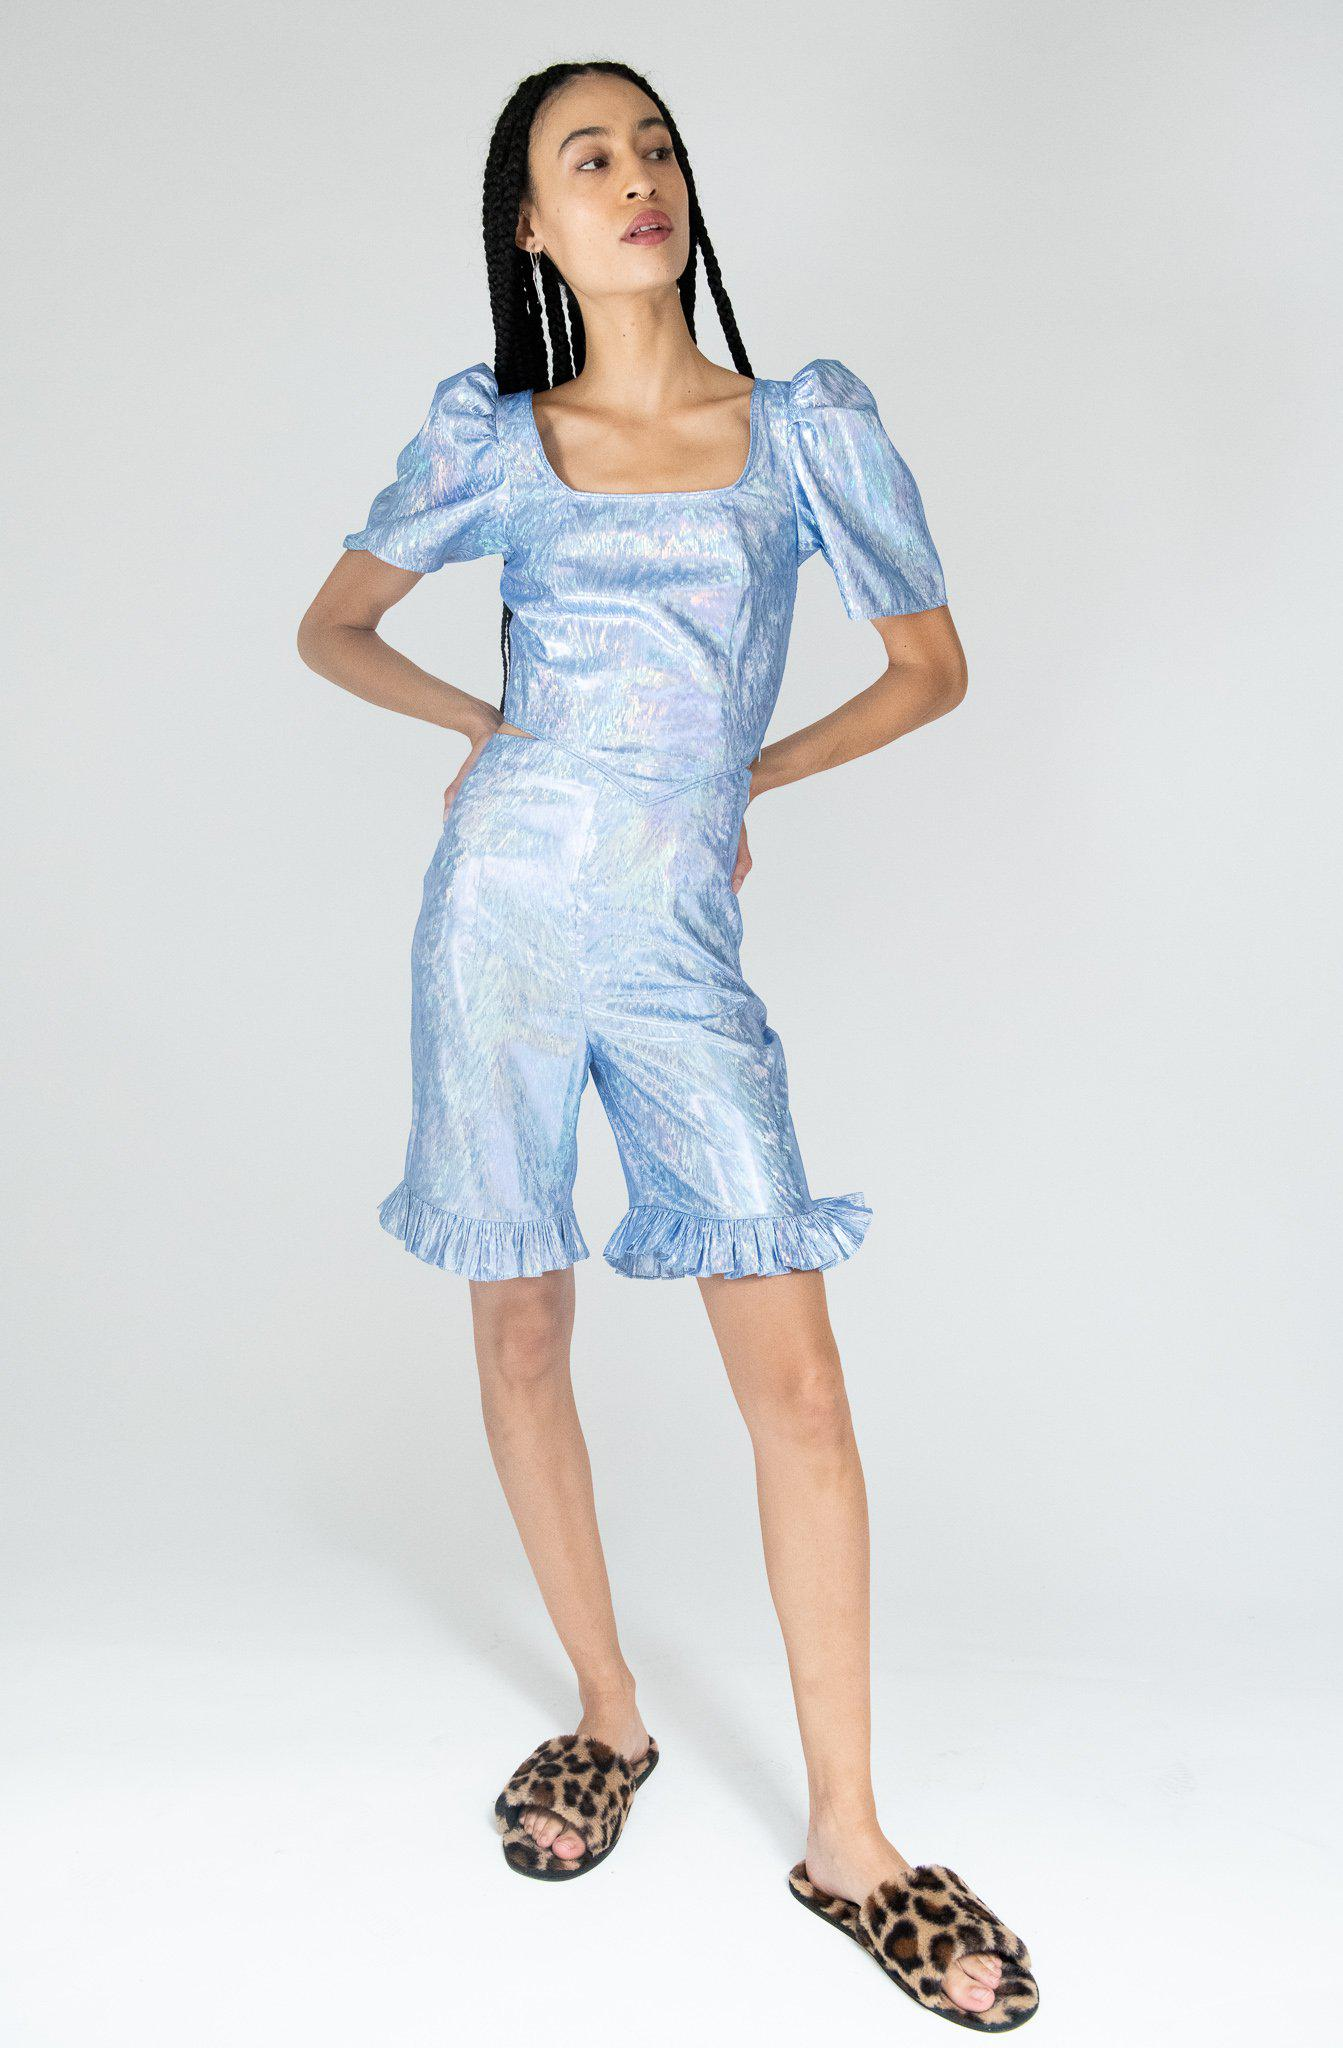 Ruffle Short in Blue Holographic Lamé